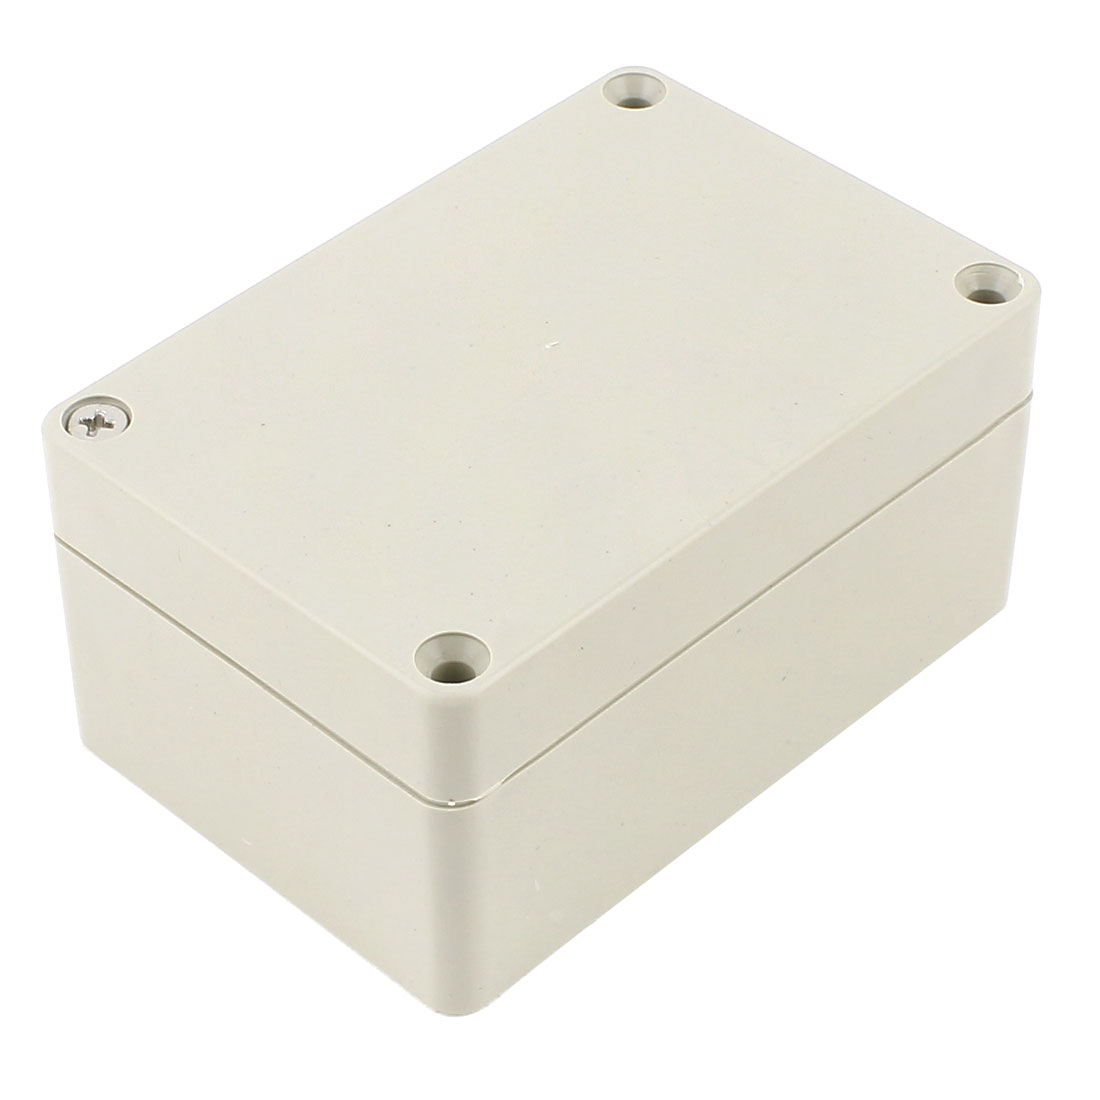 100mmx68mmx50mm Cable Connect ABS Dustproof IP65 Sealed Switch Junction Box